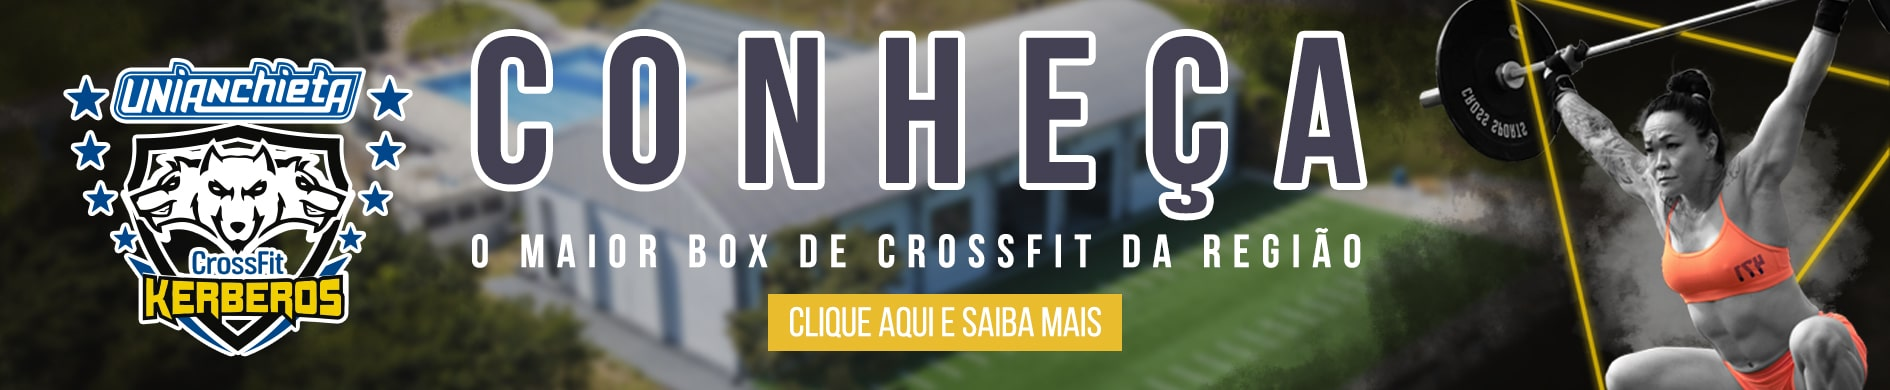 banner-crossfit-home-site